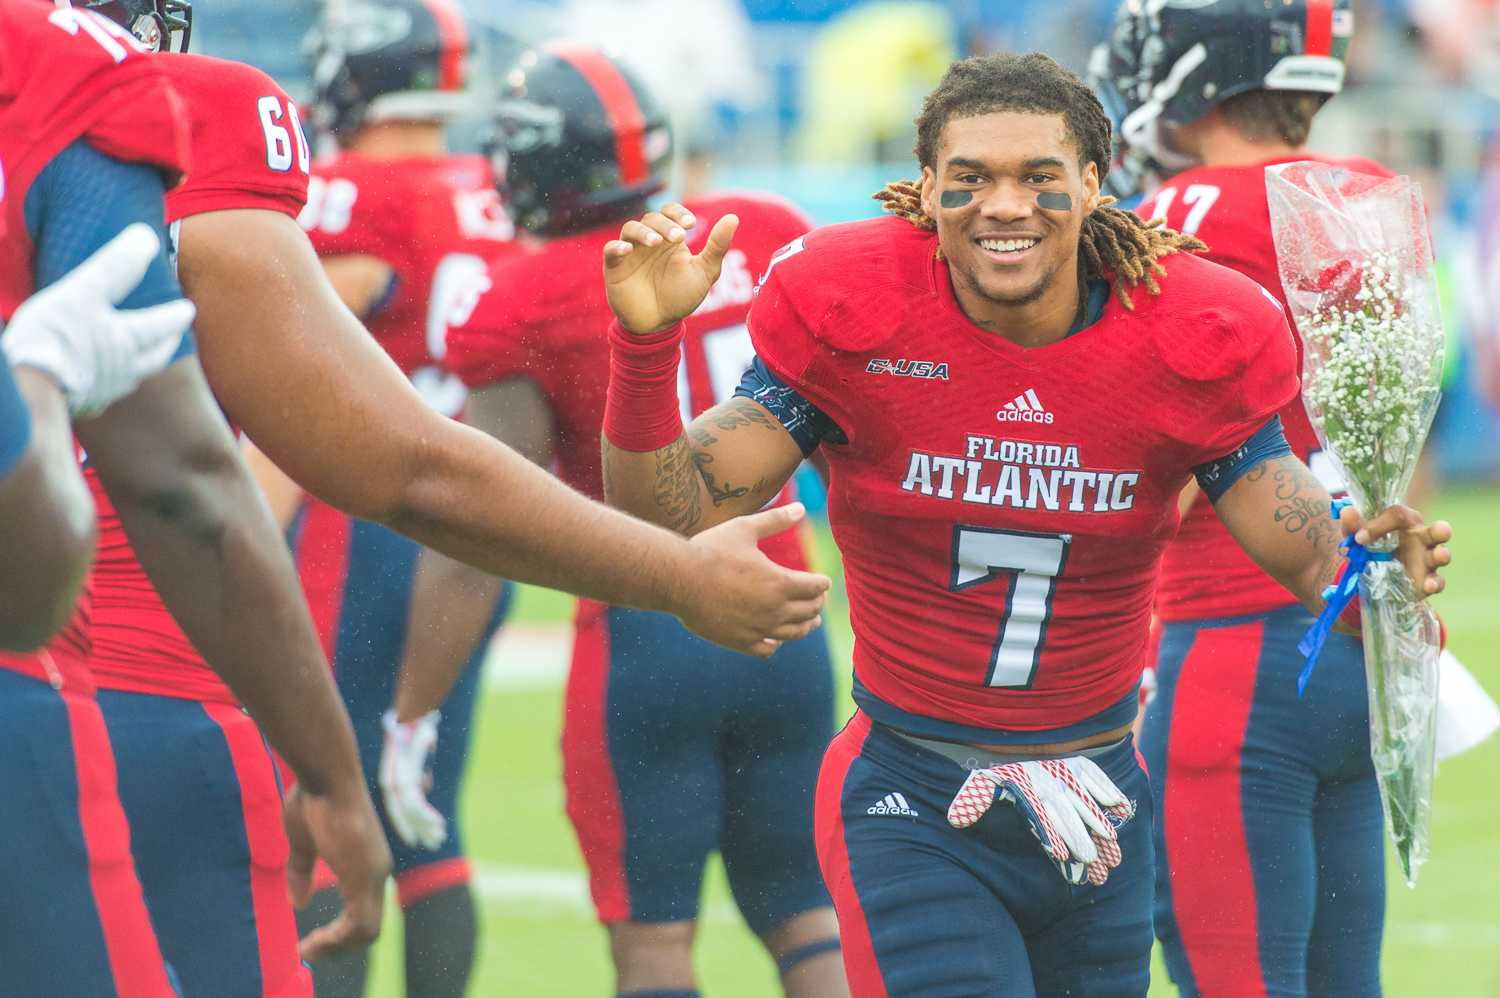 Football: Five FAU players sign NFL contracts